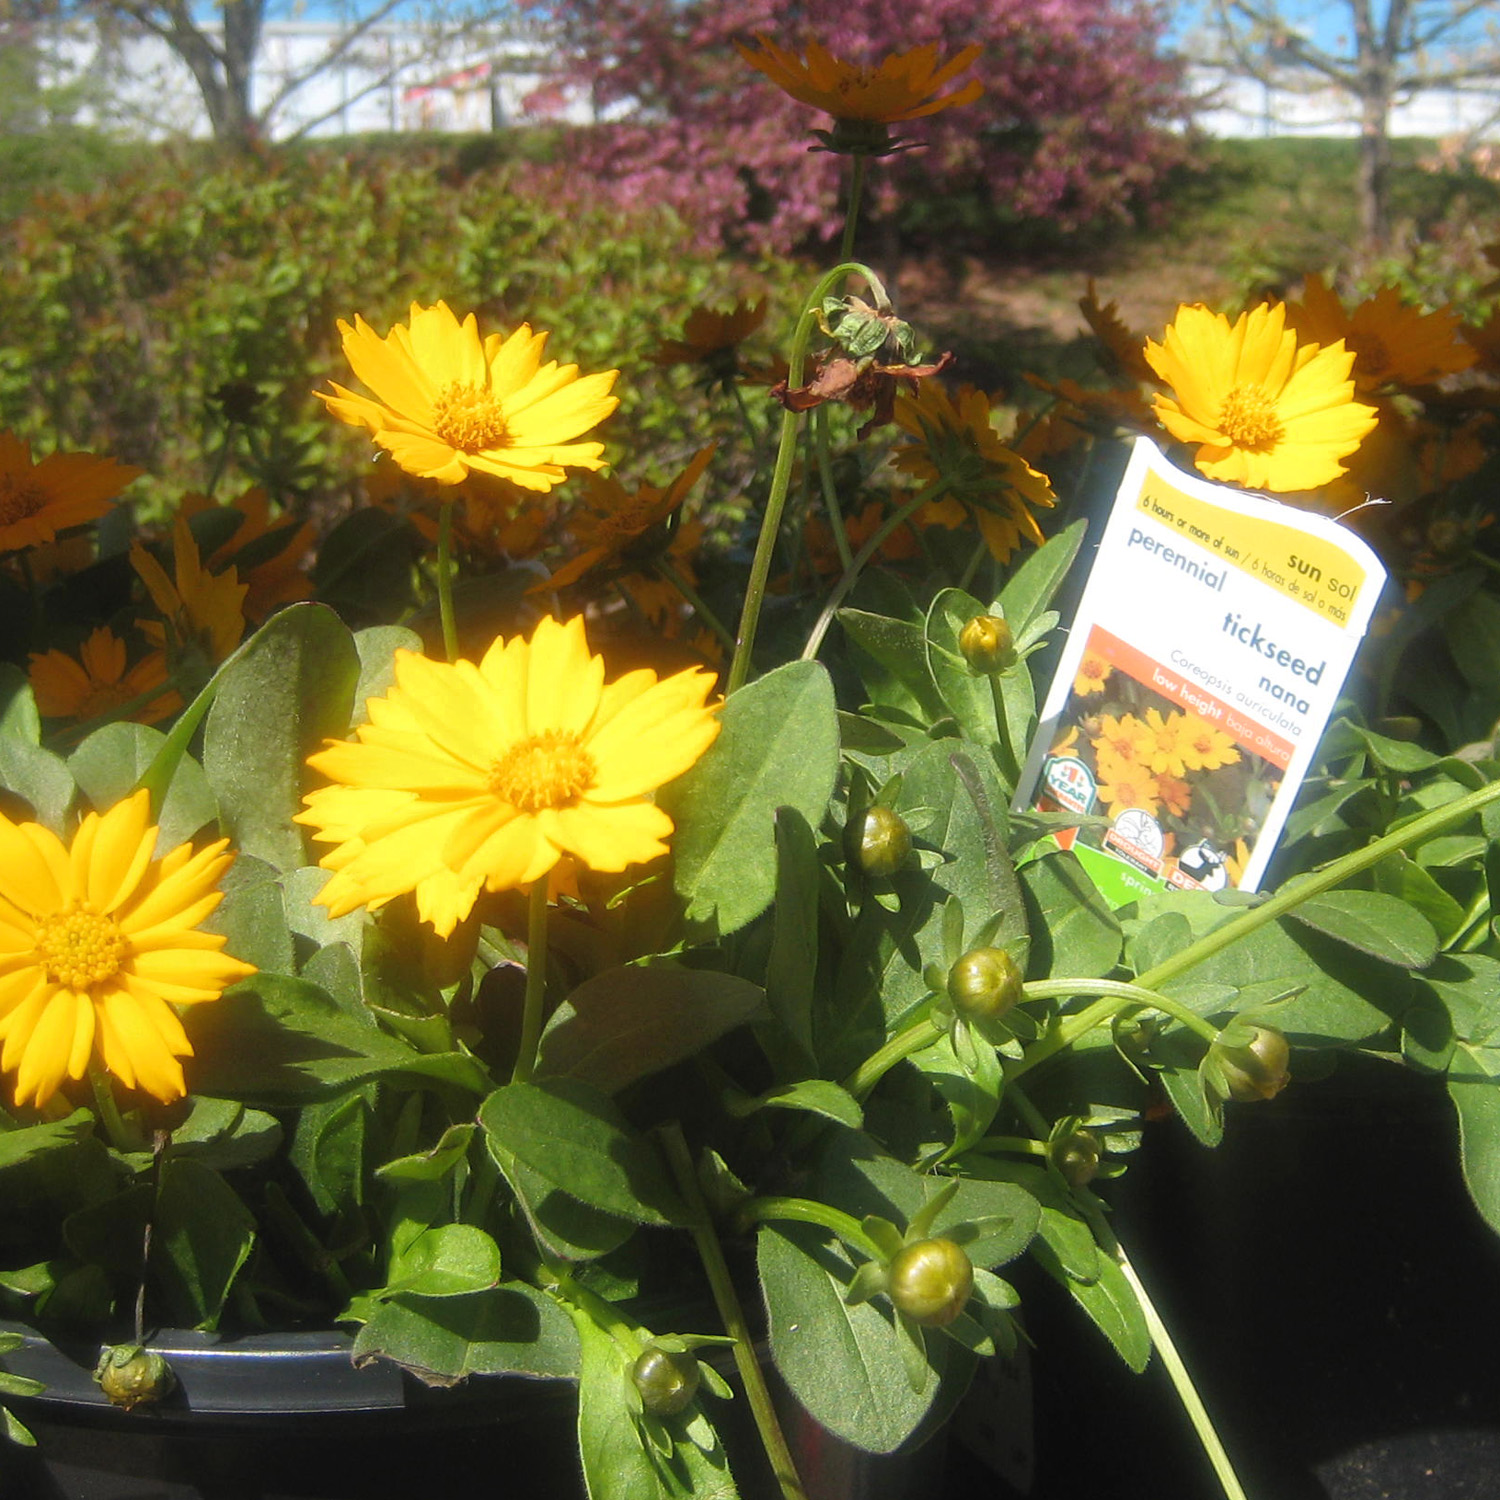 Perennials at Home Depot: What looks good right now | Stately Kitsch